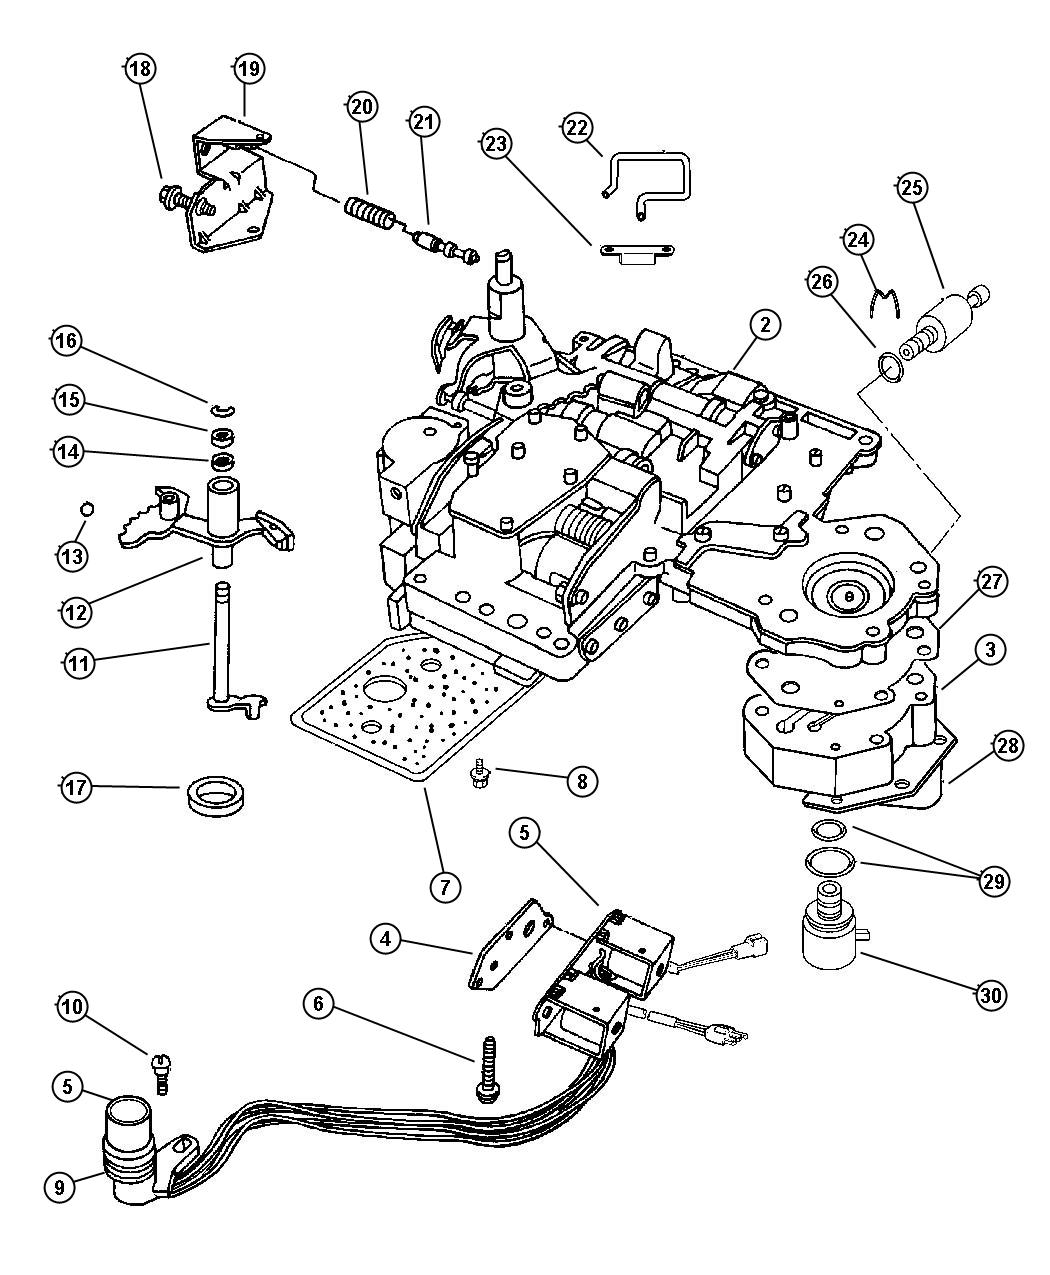 2000 dodge dakota fuse box diagram for transmission   51